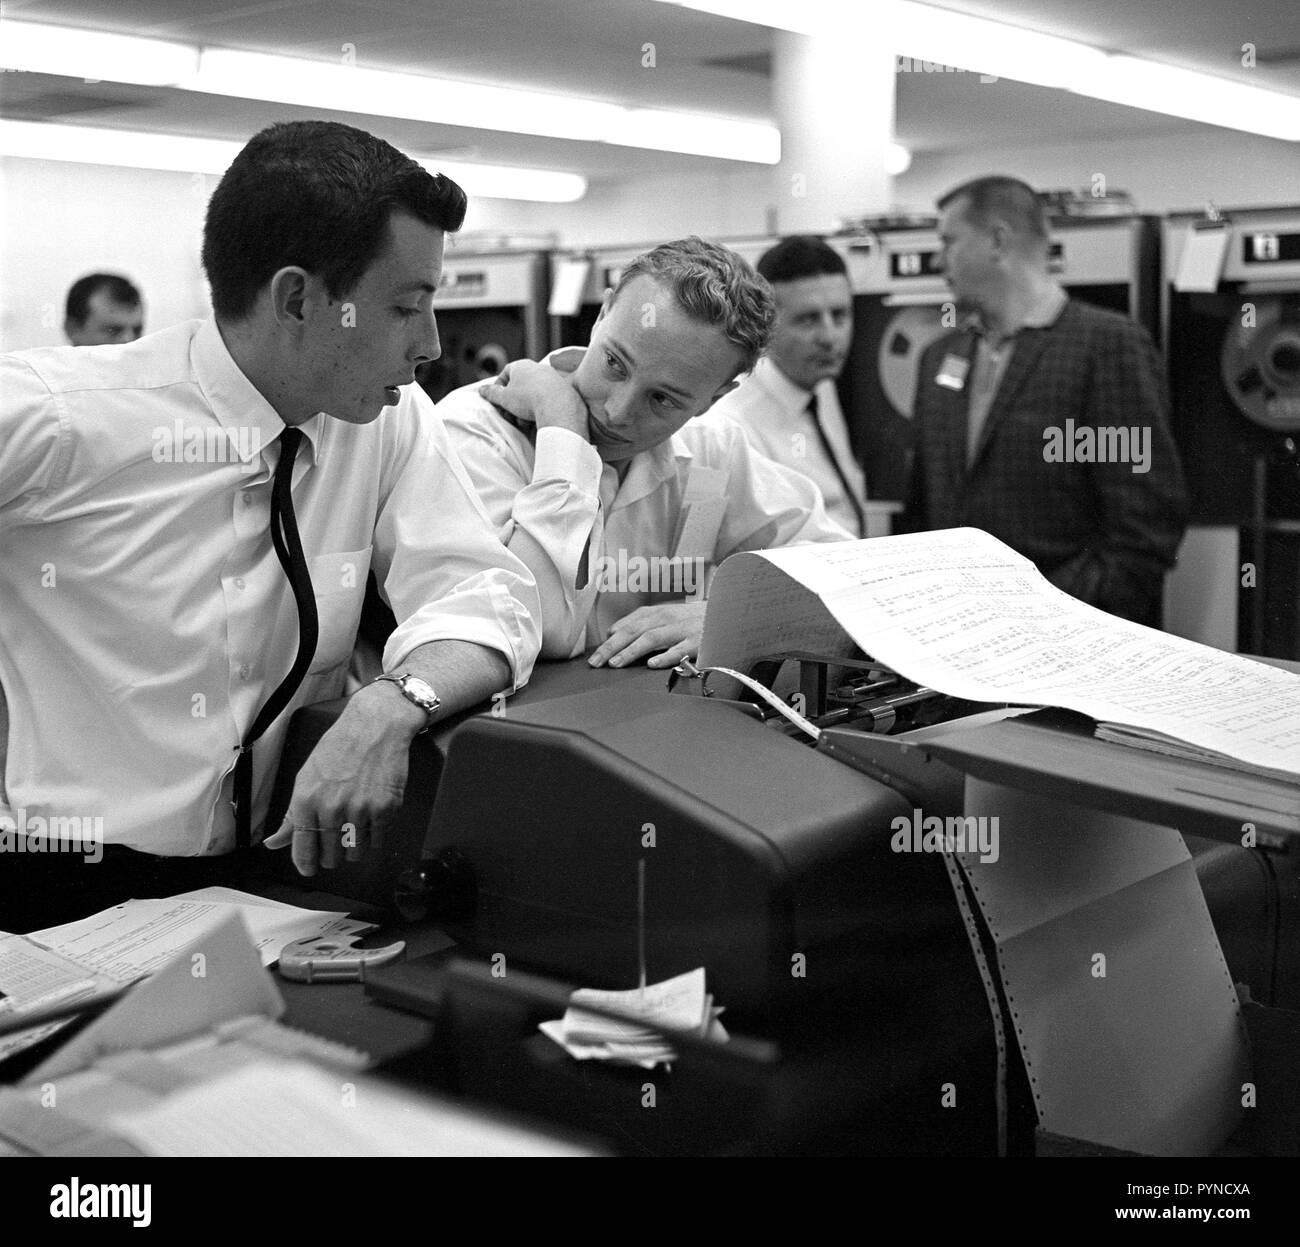 This archival image shows engineers at NASA's Jet Propulsion Laboratory looking at data related to the Venus flyby of Mariner 2 on Dec. 14, 1962. This was the first successful flyby of another planet. - Stock Image